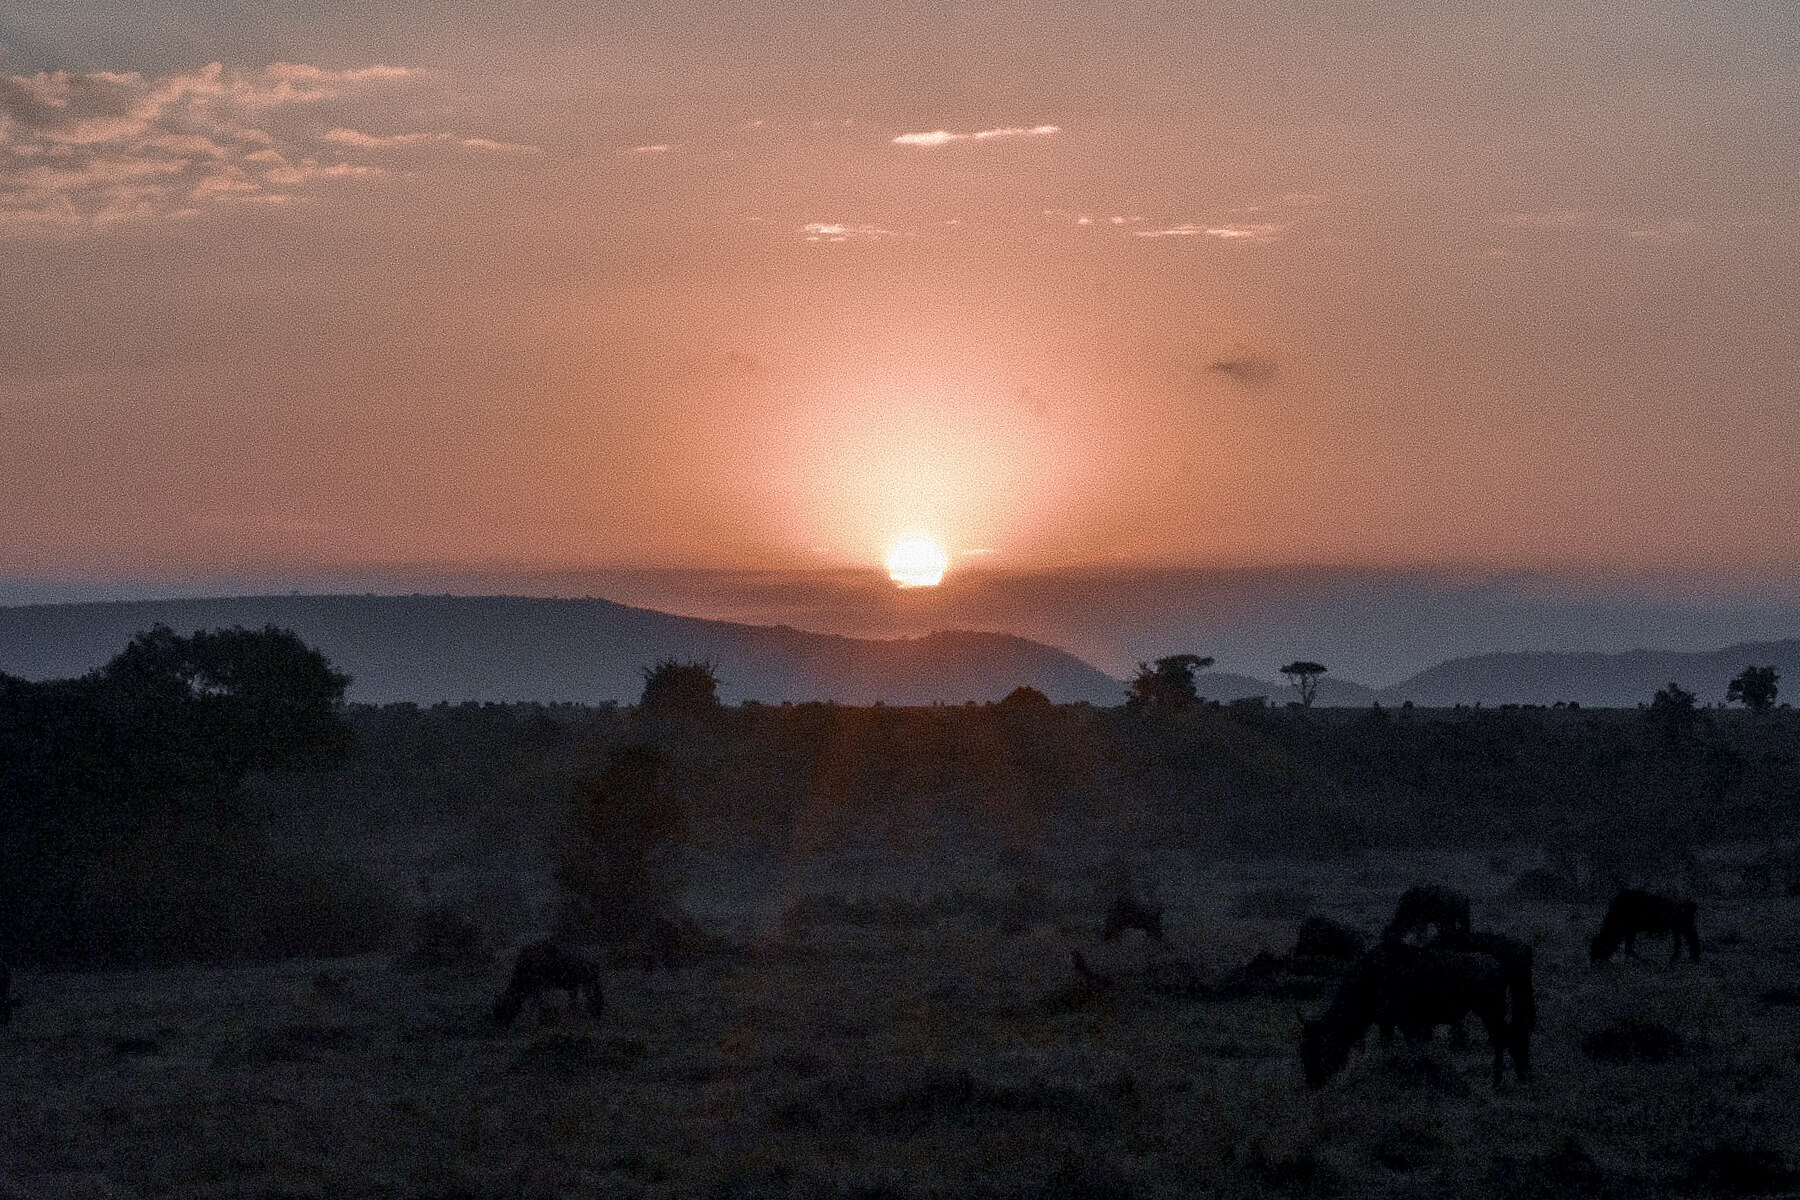 A pink sunrise in the Maasai Mara with wildebeest grazing in the foreground